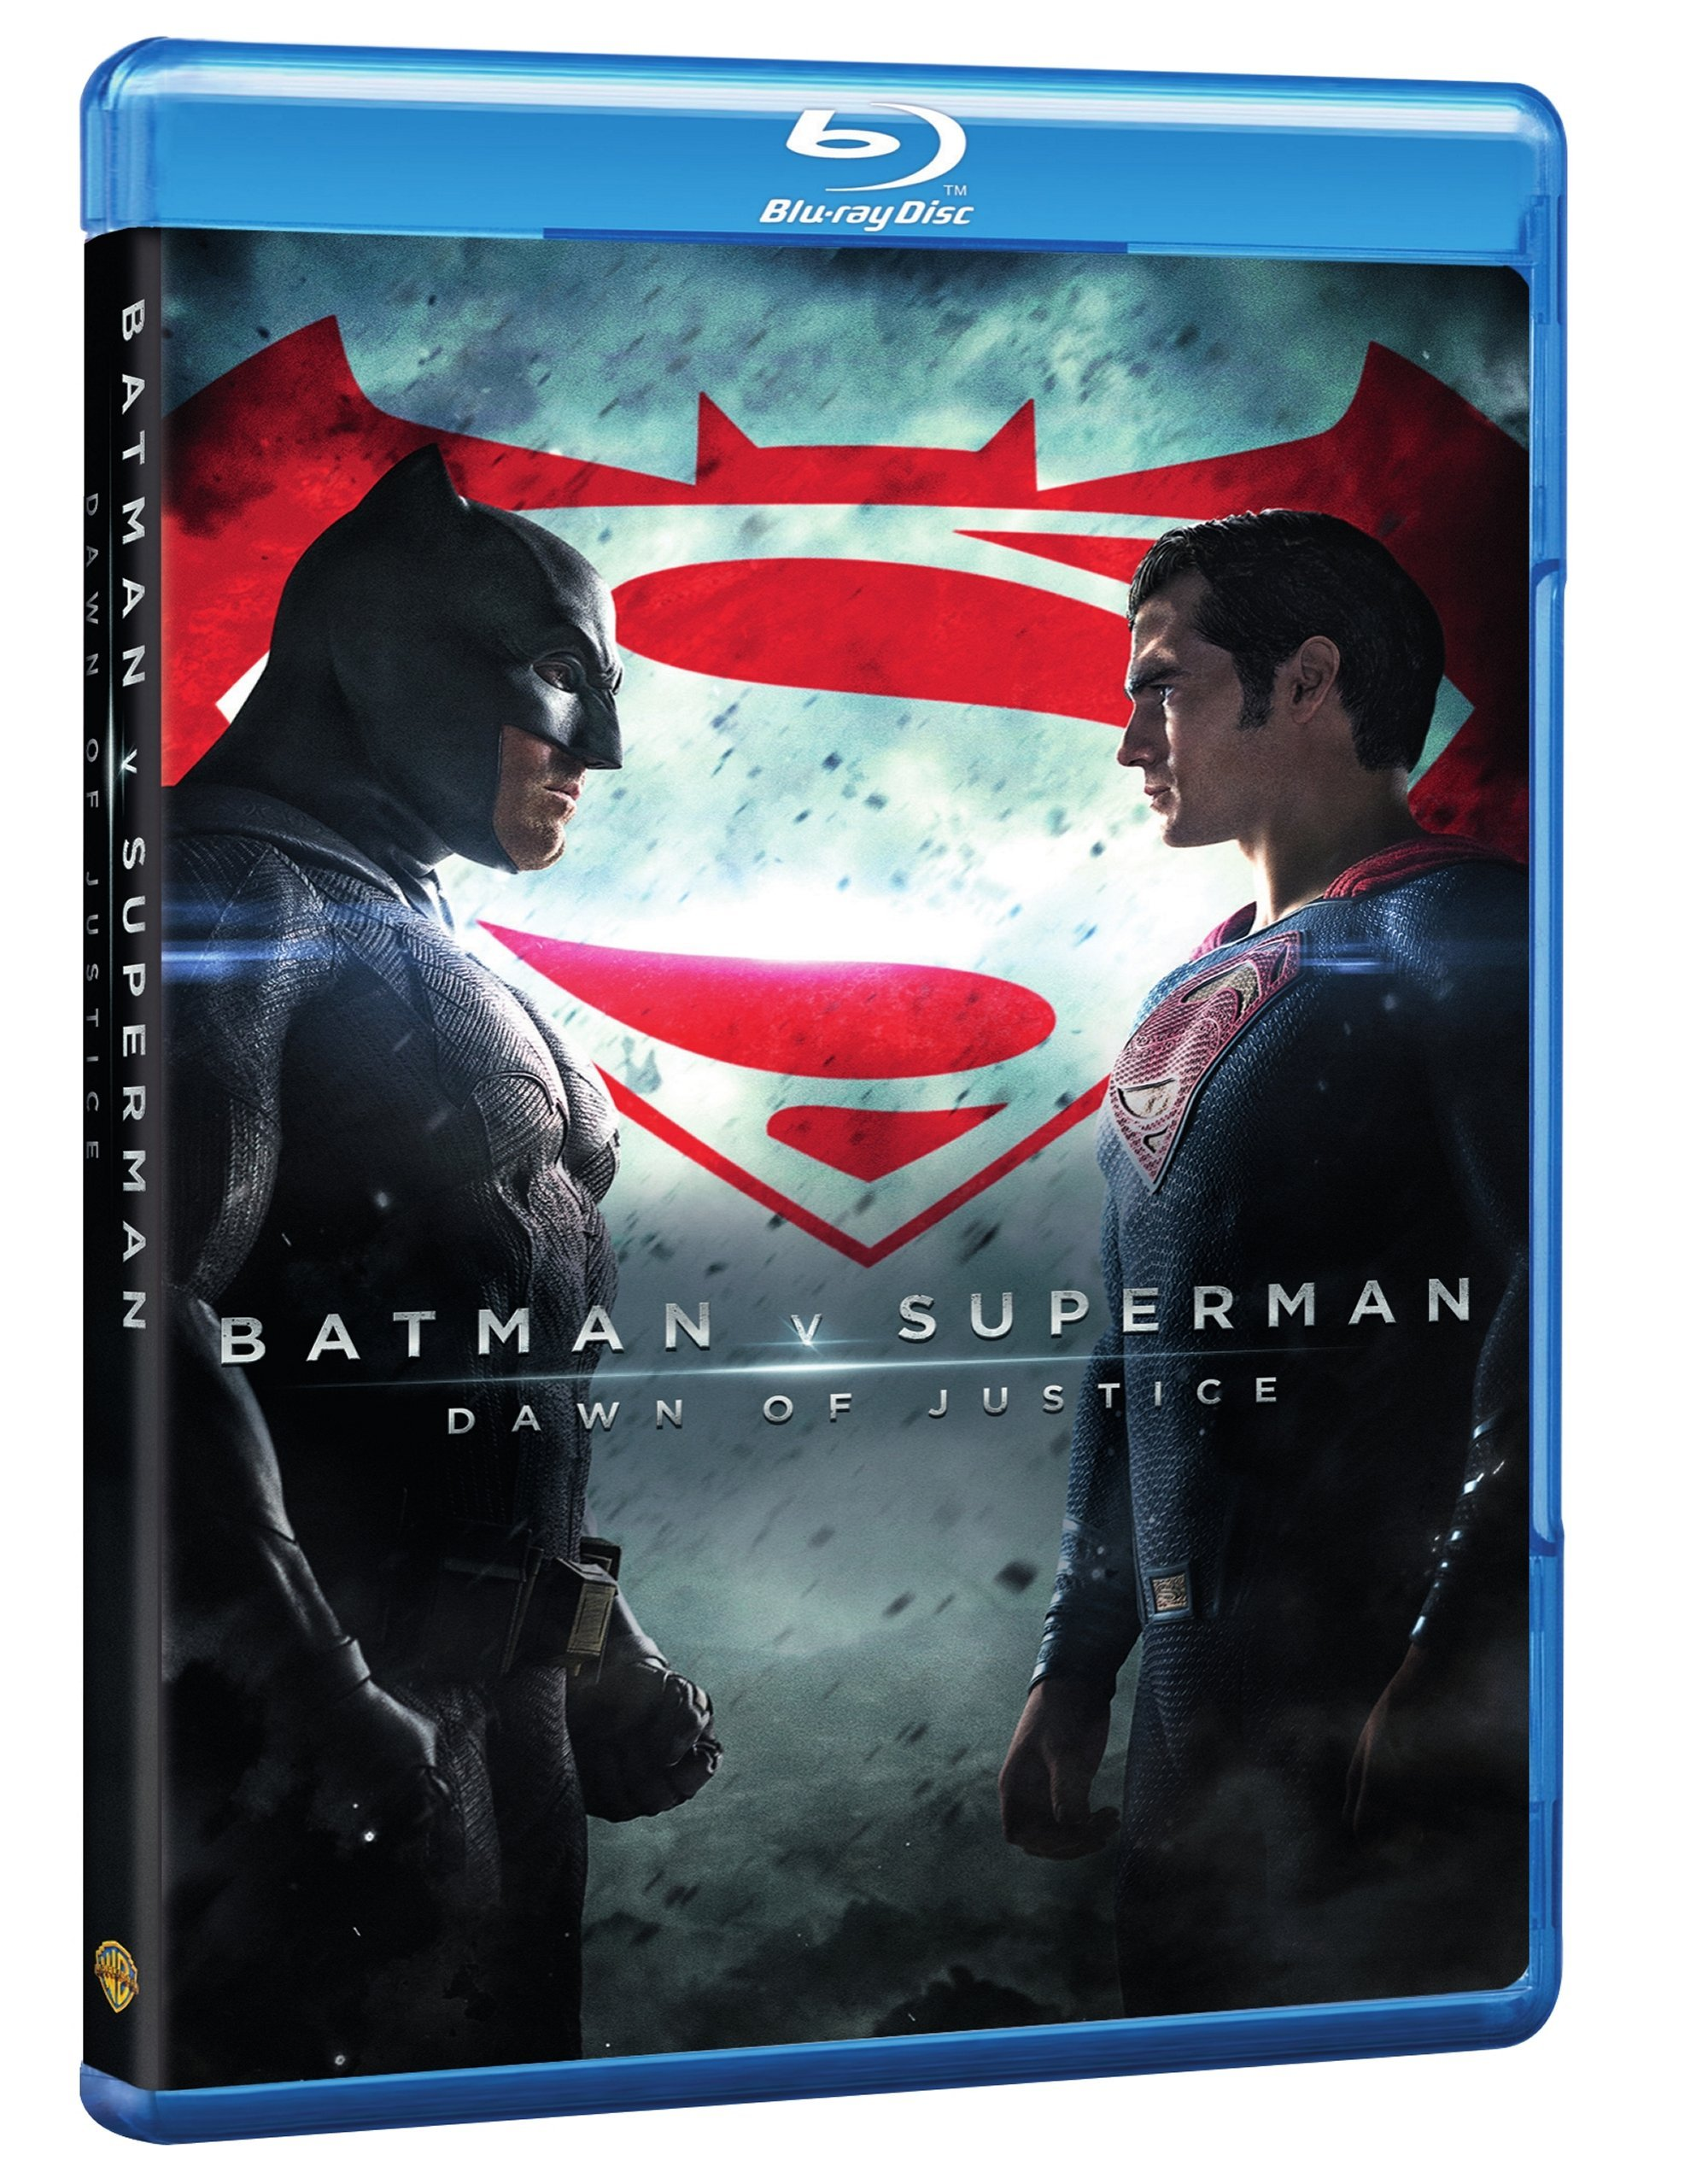 Batman Vs Superman Blu Ray